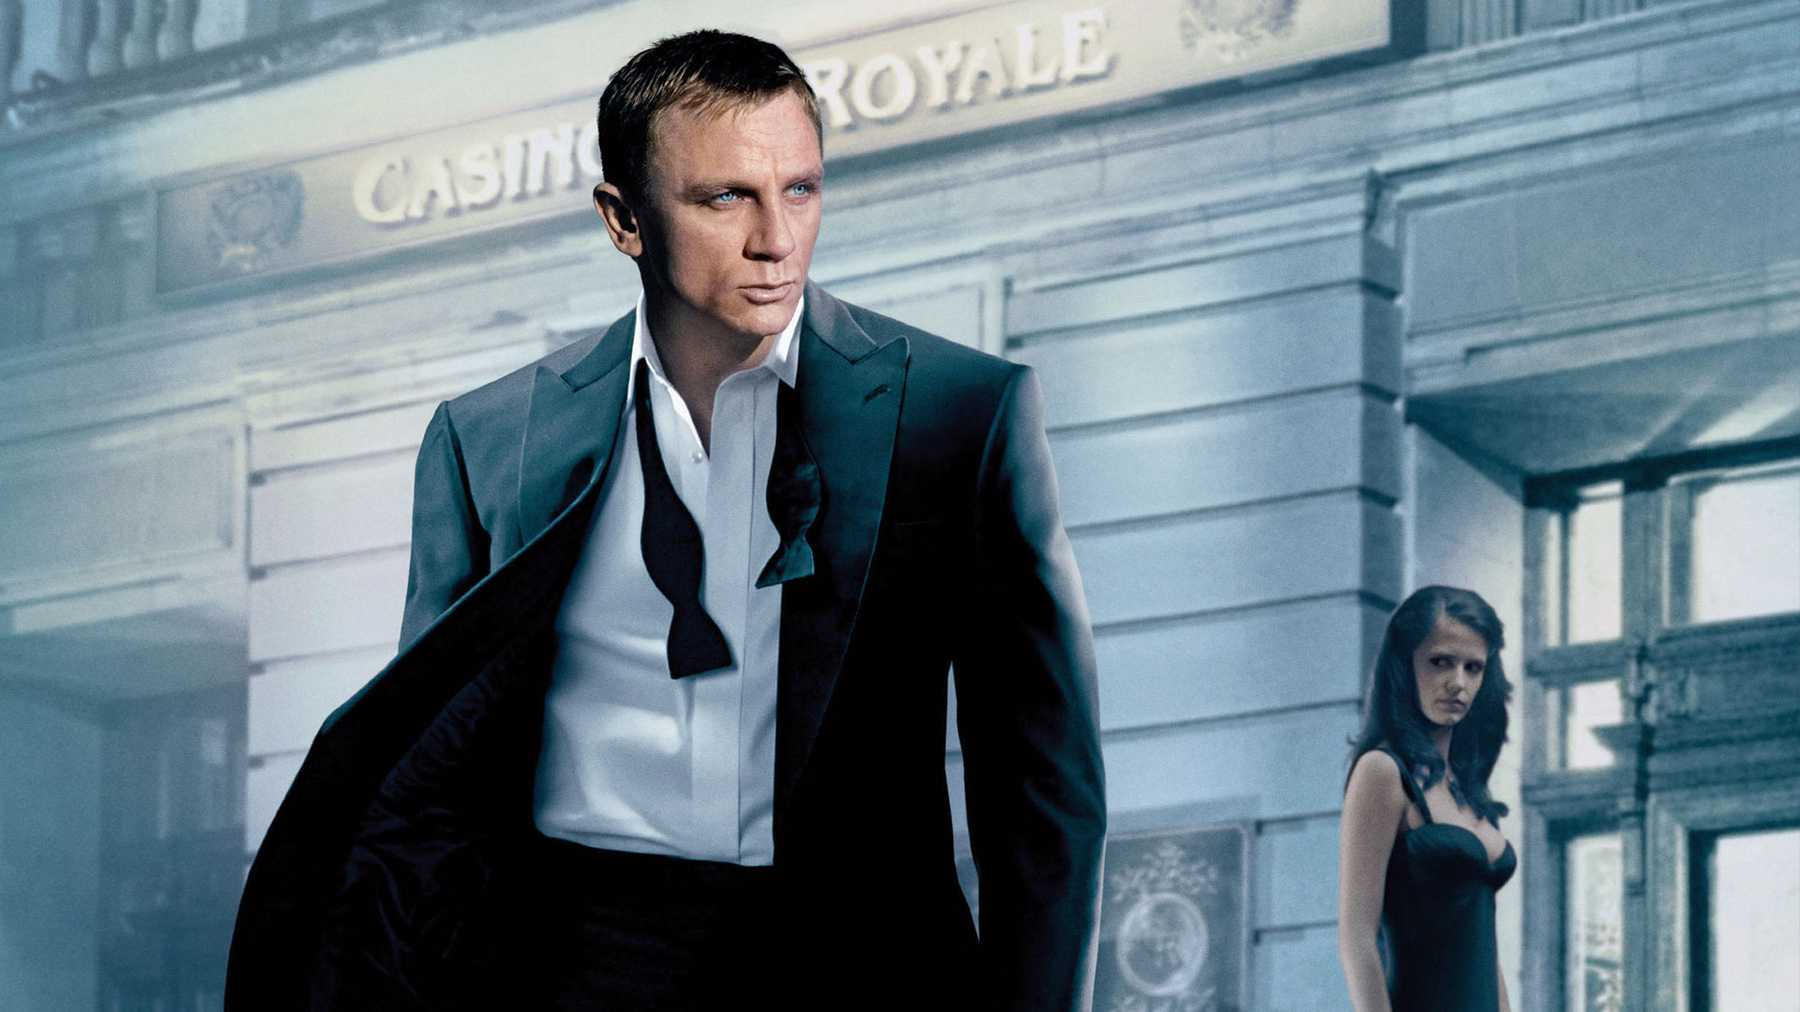 James bond online casino royale казино в лотте